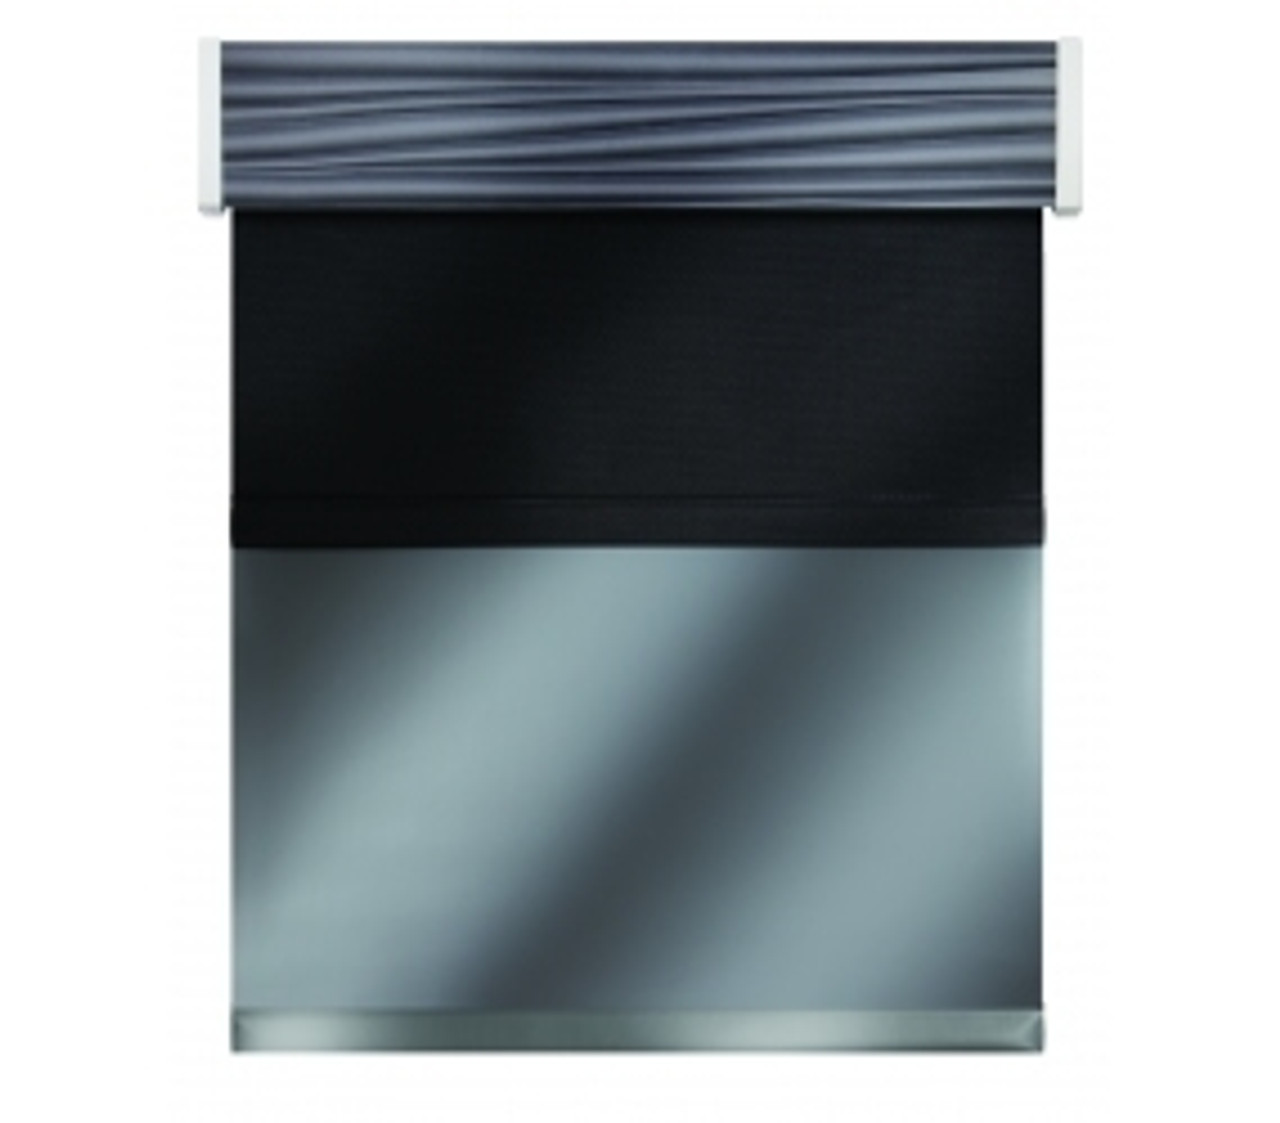 Impulse Day|Night Roller Shades with Valance